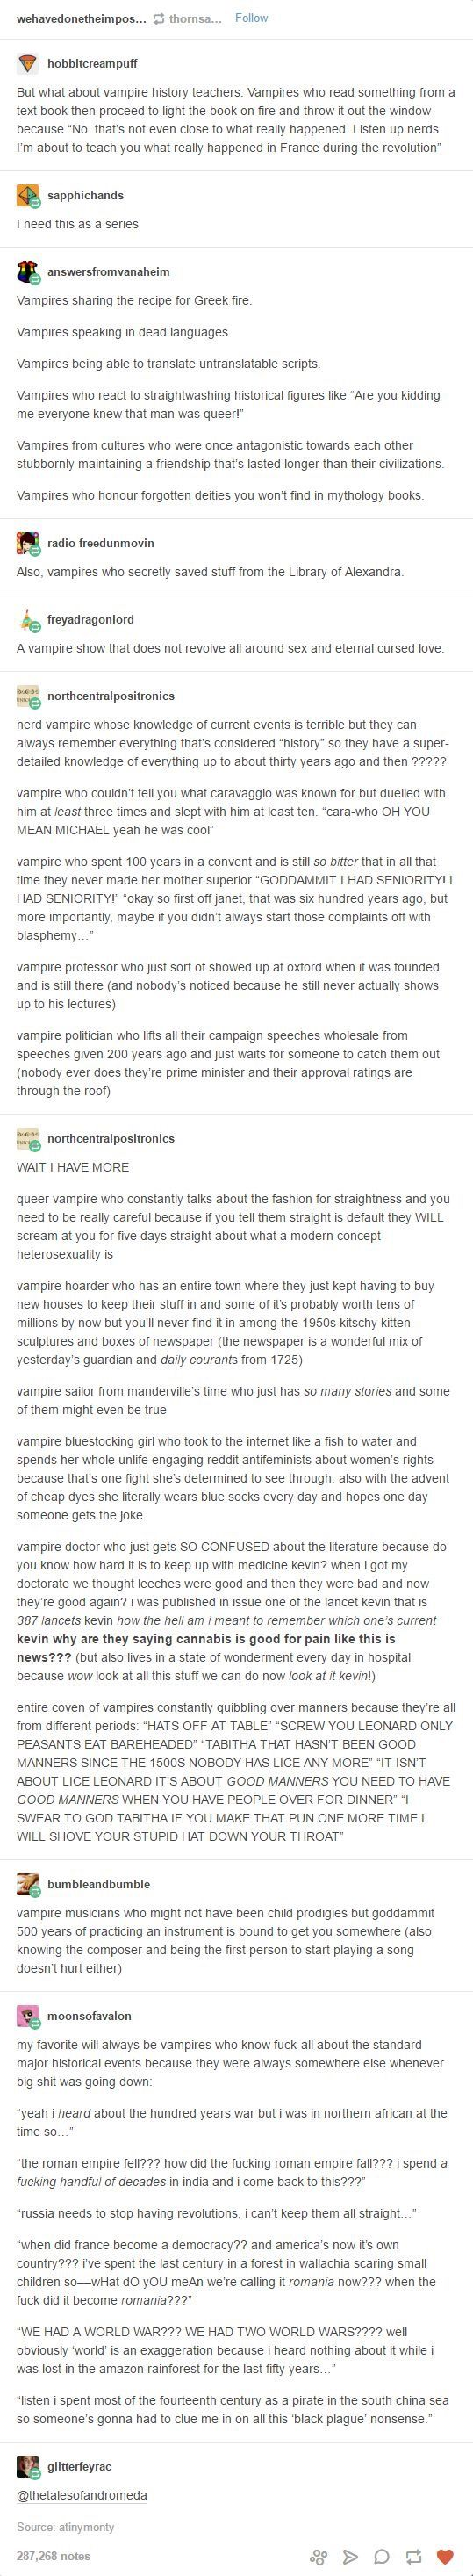 vampires real essay Vampirescom you've seen it all by now the internet's dark underbelly, slimy and slick, poked up for you to touch and maybe even vivisect, if that's what vampire games, vampire news, and real vampires.